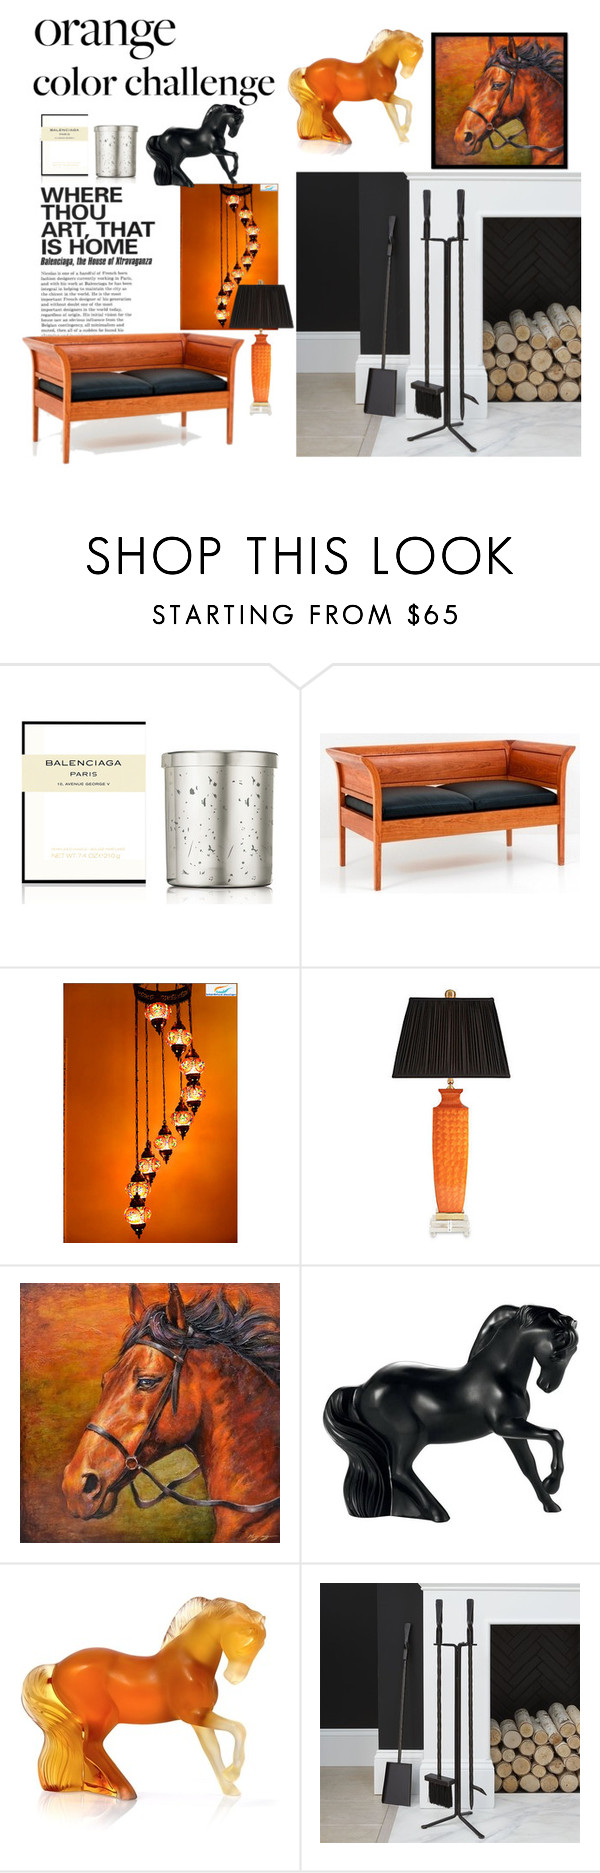 """""""Equestrian"""" by bijouxinedit on Polyvore featuring interior, interiors, interior design, home, home decor, interior decorating, Balenciaga, Thos. Moser, Chelsea House and Yosemite Home Décor"""